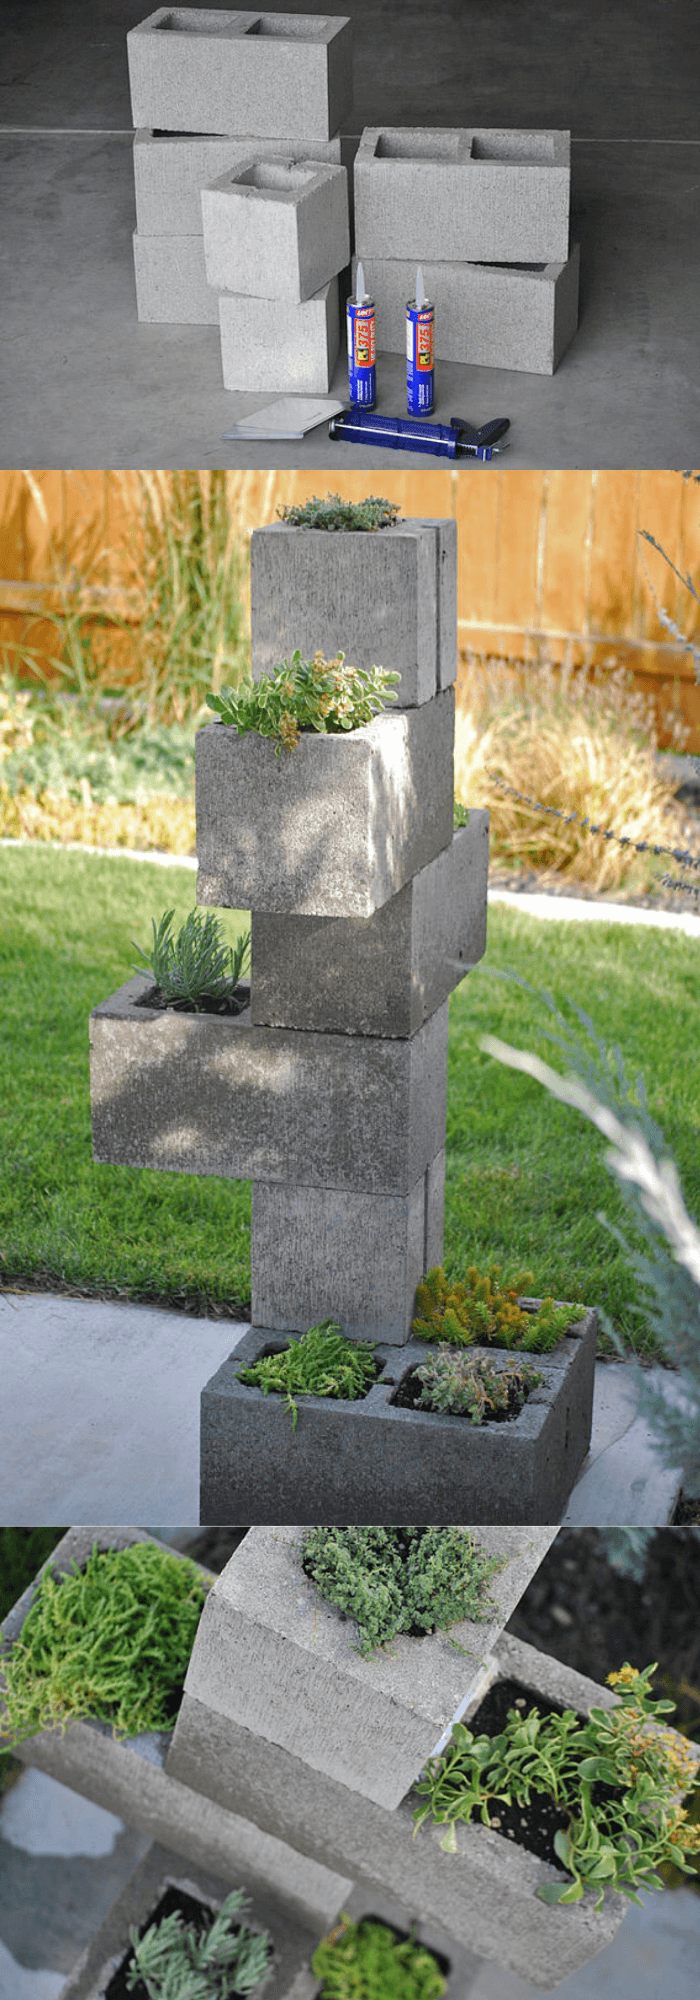 DIY Cinder Block Planter